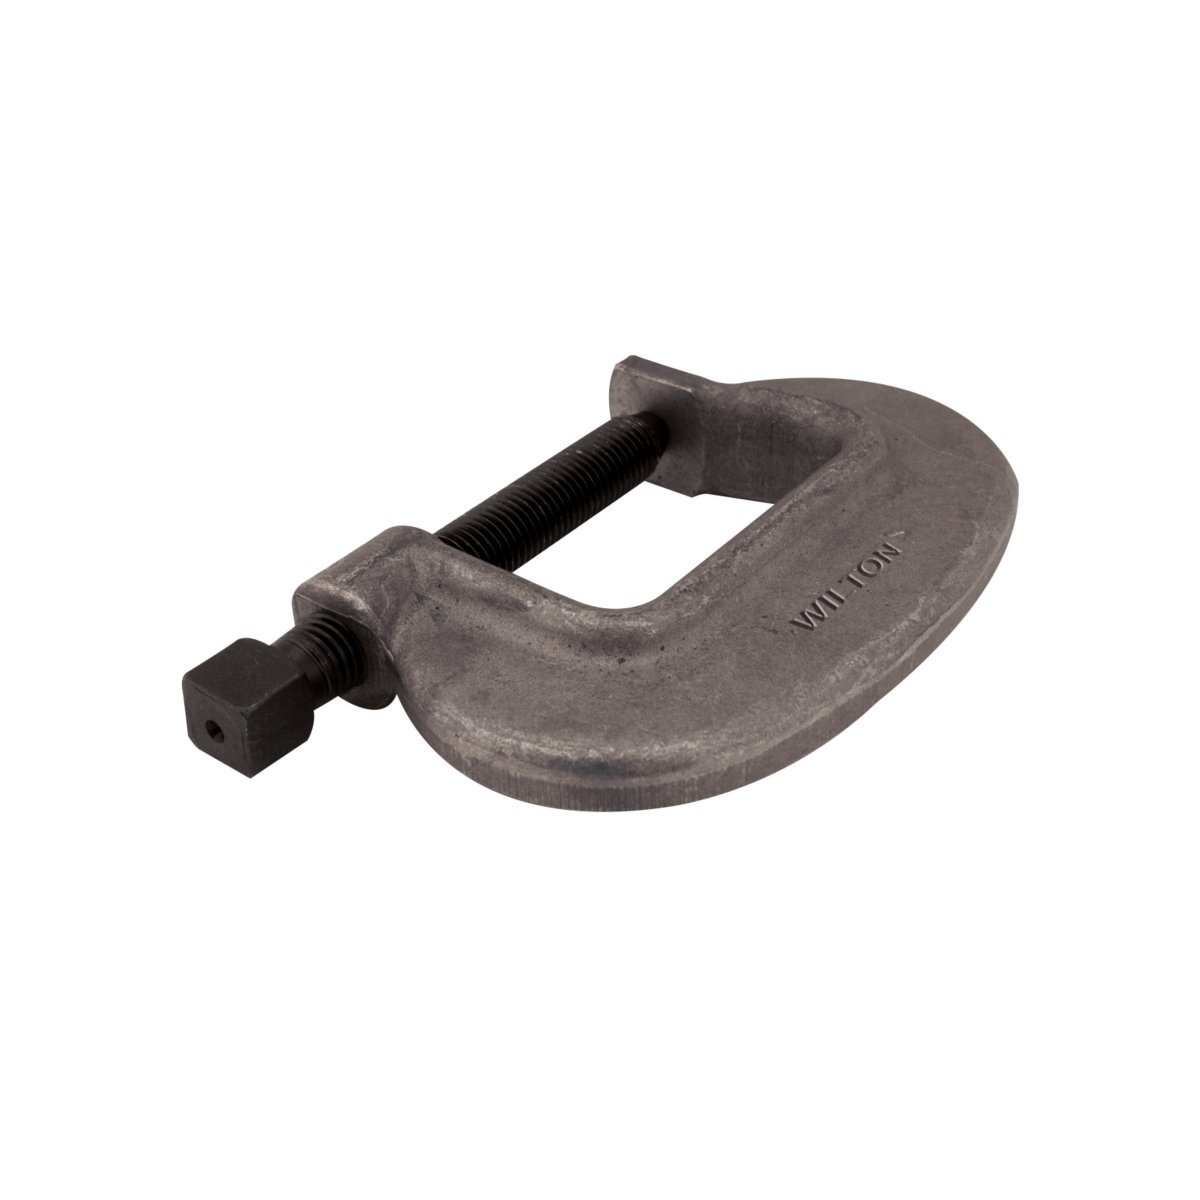 Wilton 14554 4-Fc, ''O'' Series Bridge C-Clamp-Full Closing Spindle, 0-Inch-4-1/2-Inch Jaw Opening, 2-3/4-Inch Throat Depth by Wilton